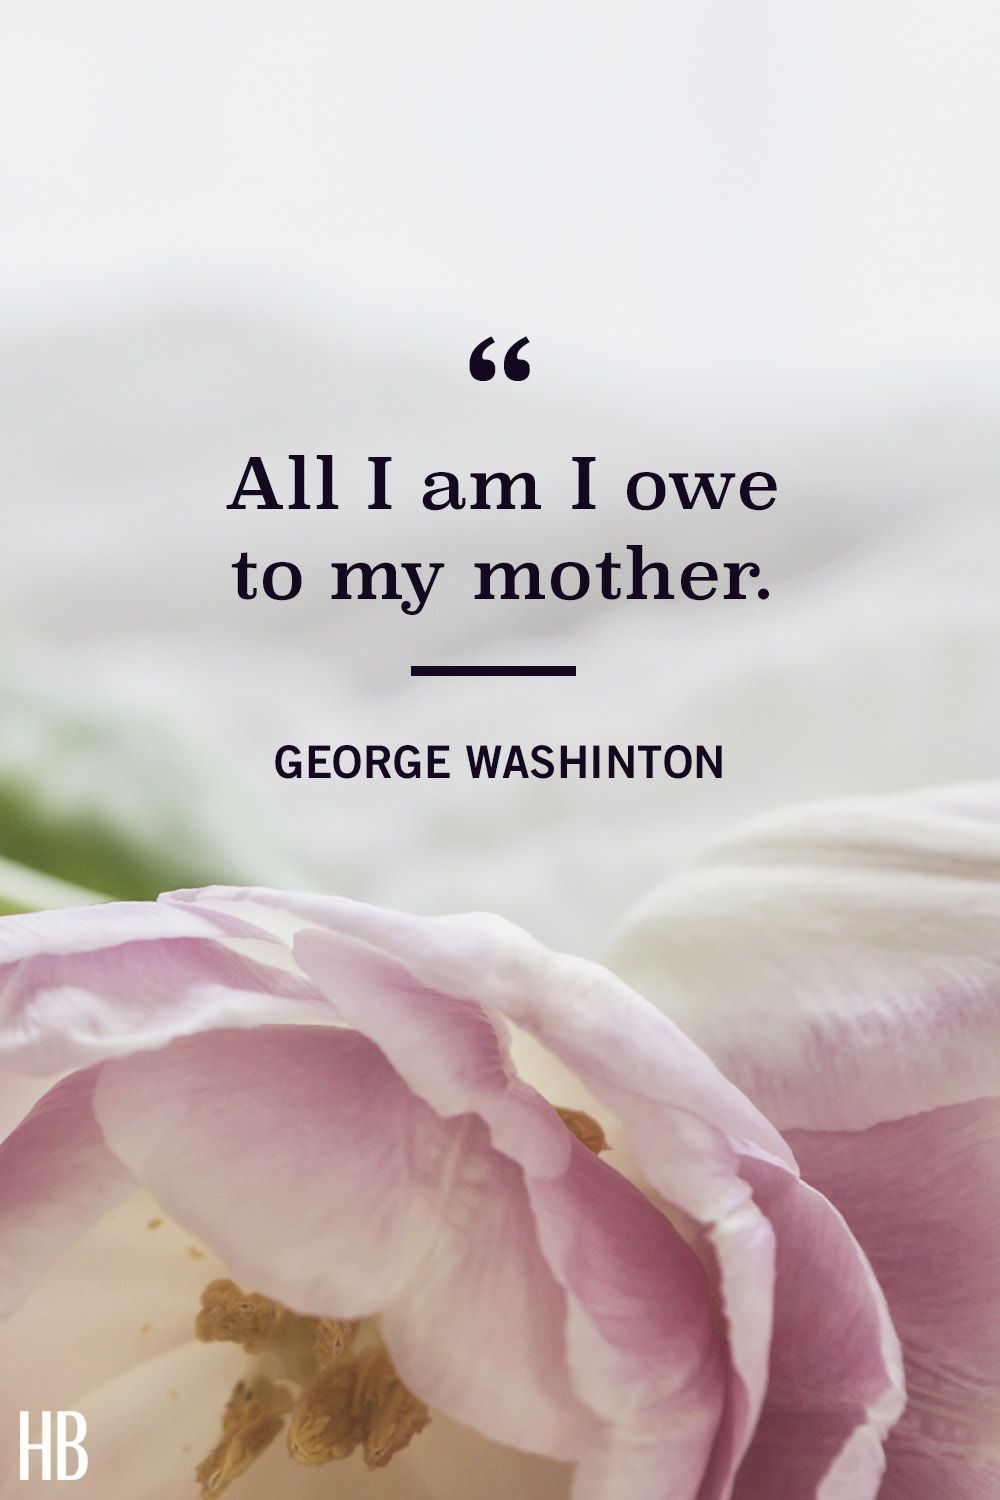 20 Best Mothers Day Quotes Inspiring Quotes About Moms